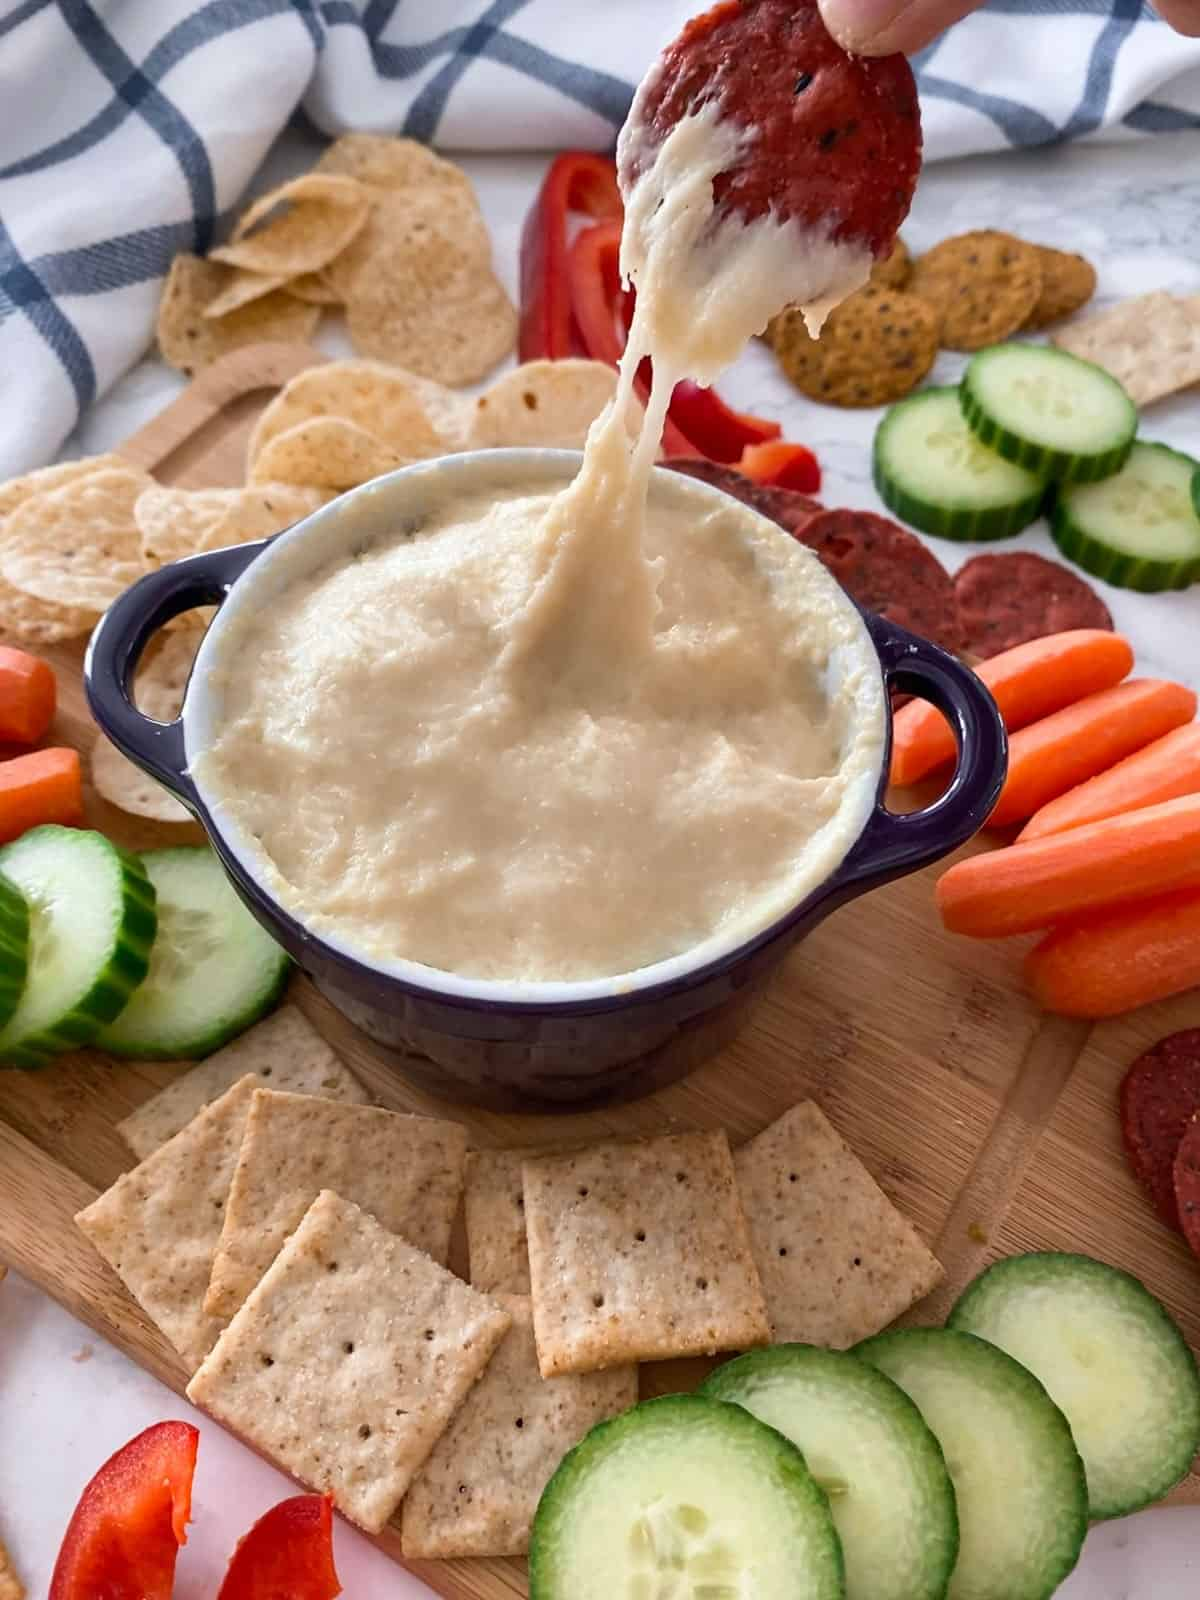 Cracker dipped in cheese dip being lifted from bowl.